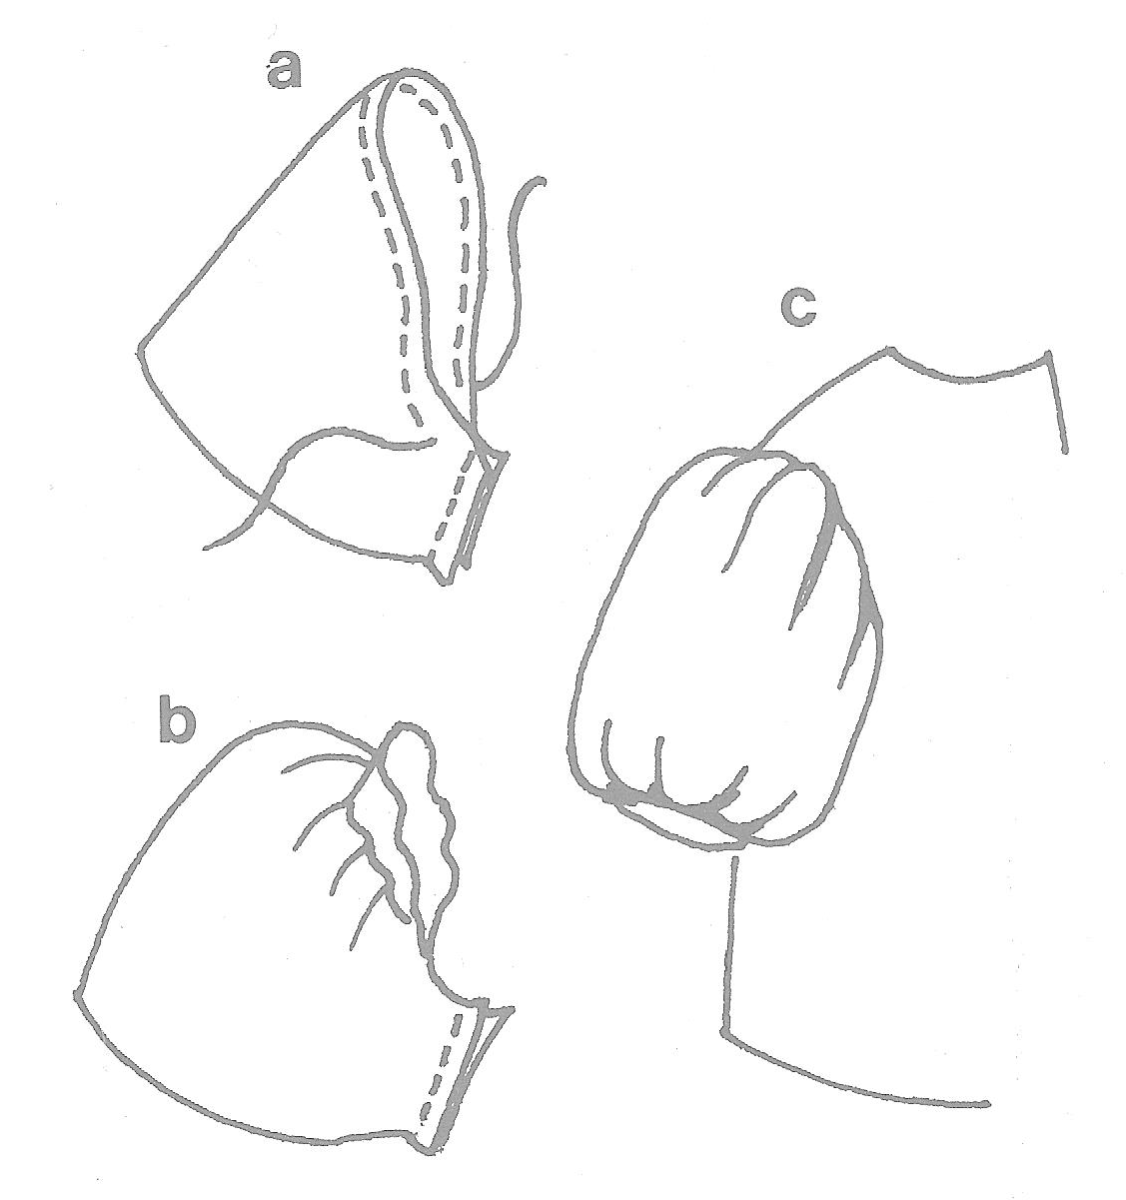 Figure 5a - Figure 5b - Figure 5c - Inserting the Sleeve